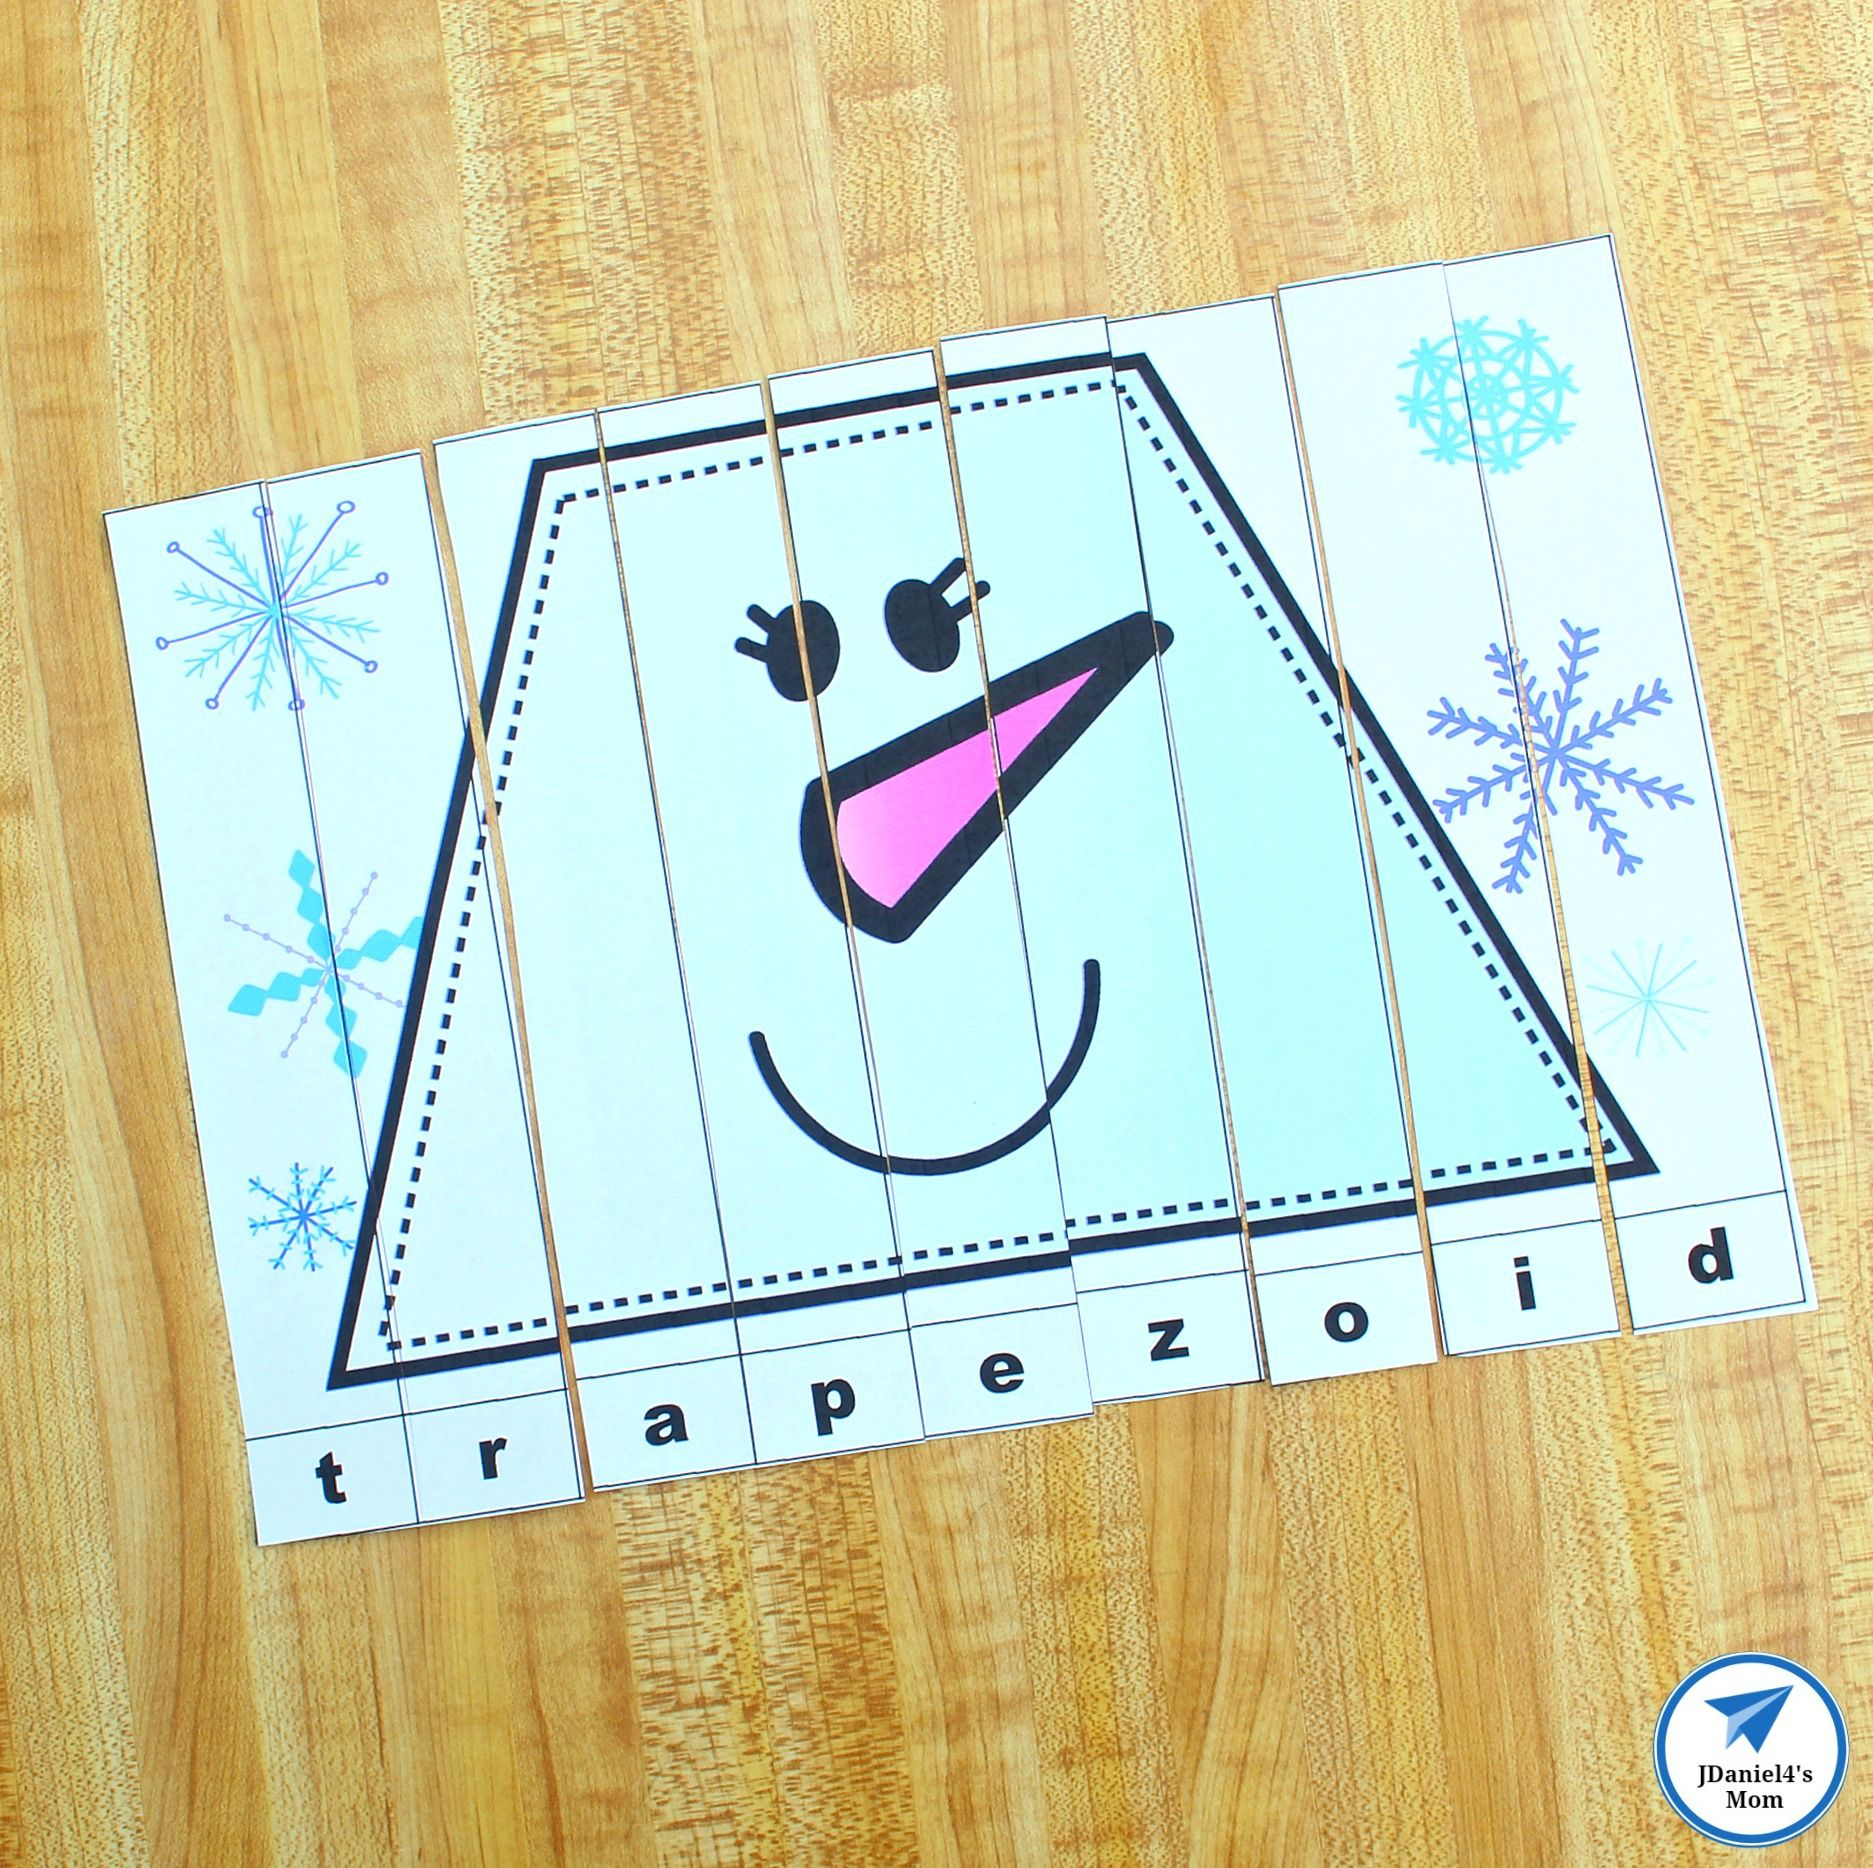 Snowman Shapes For Kids Printable Puzzles This Is The